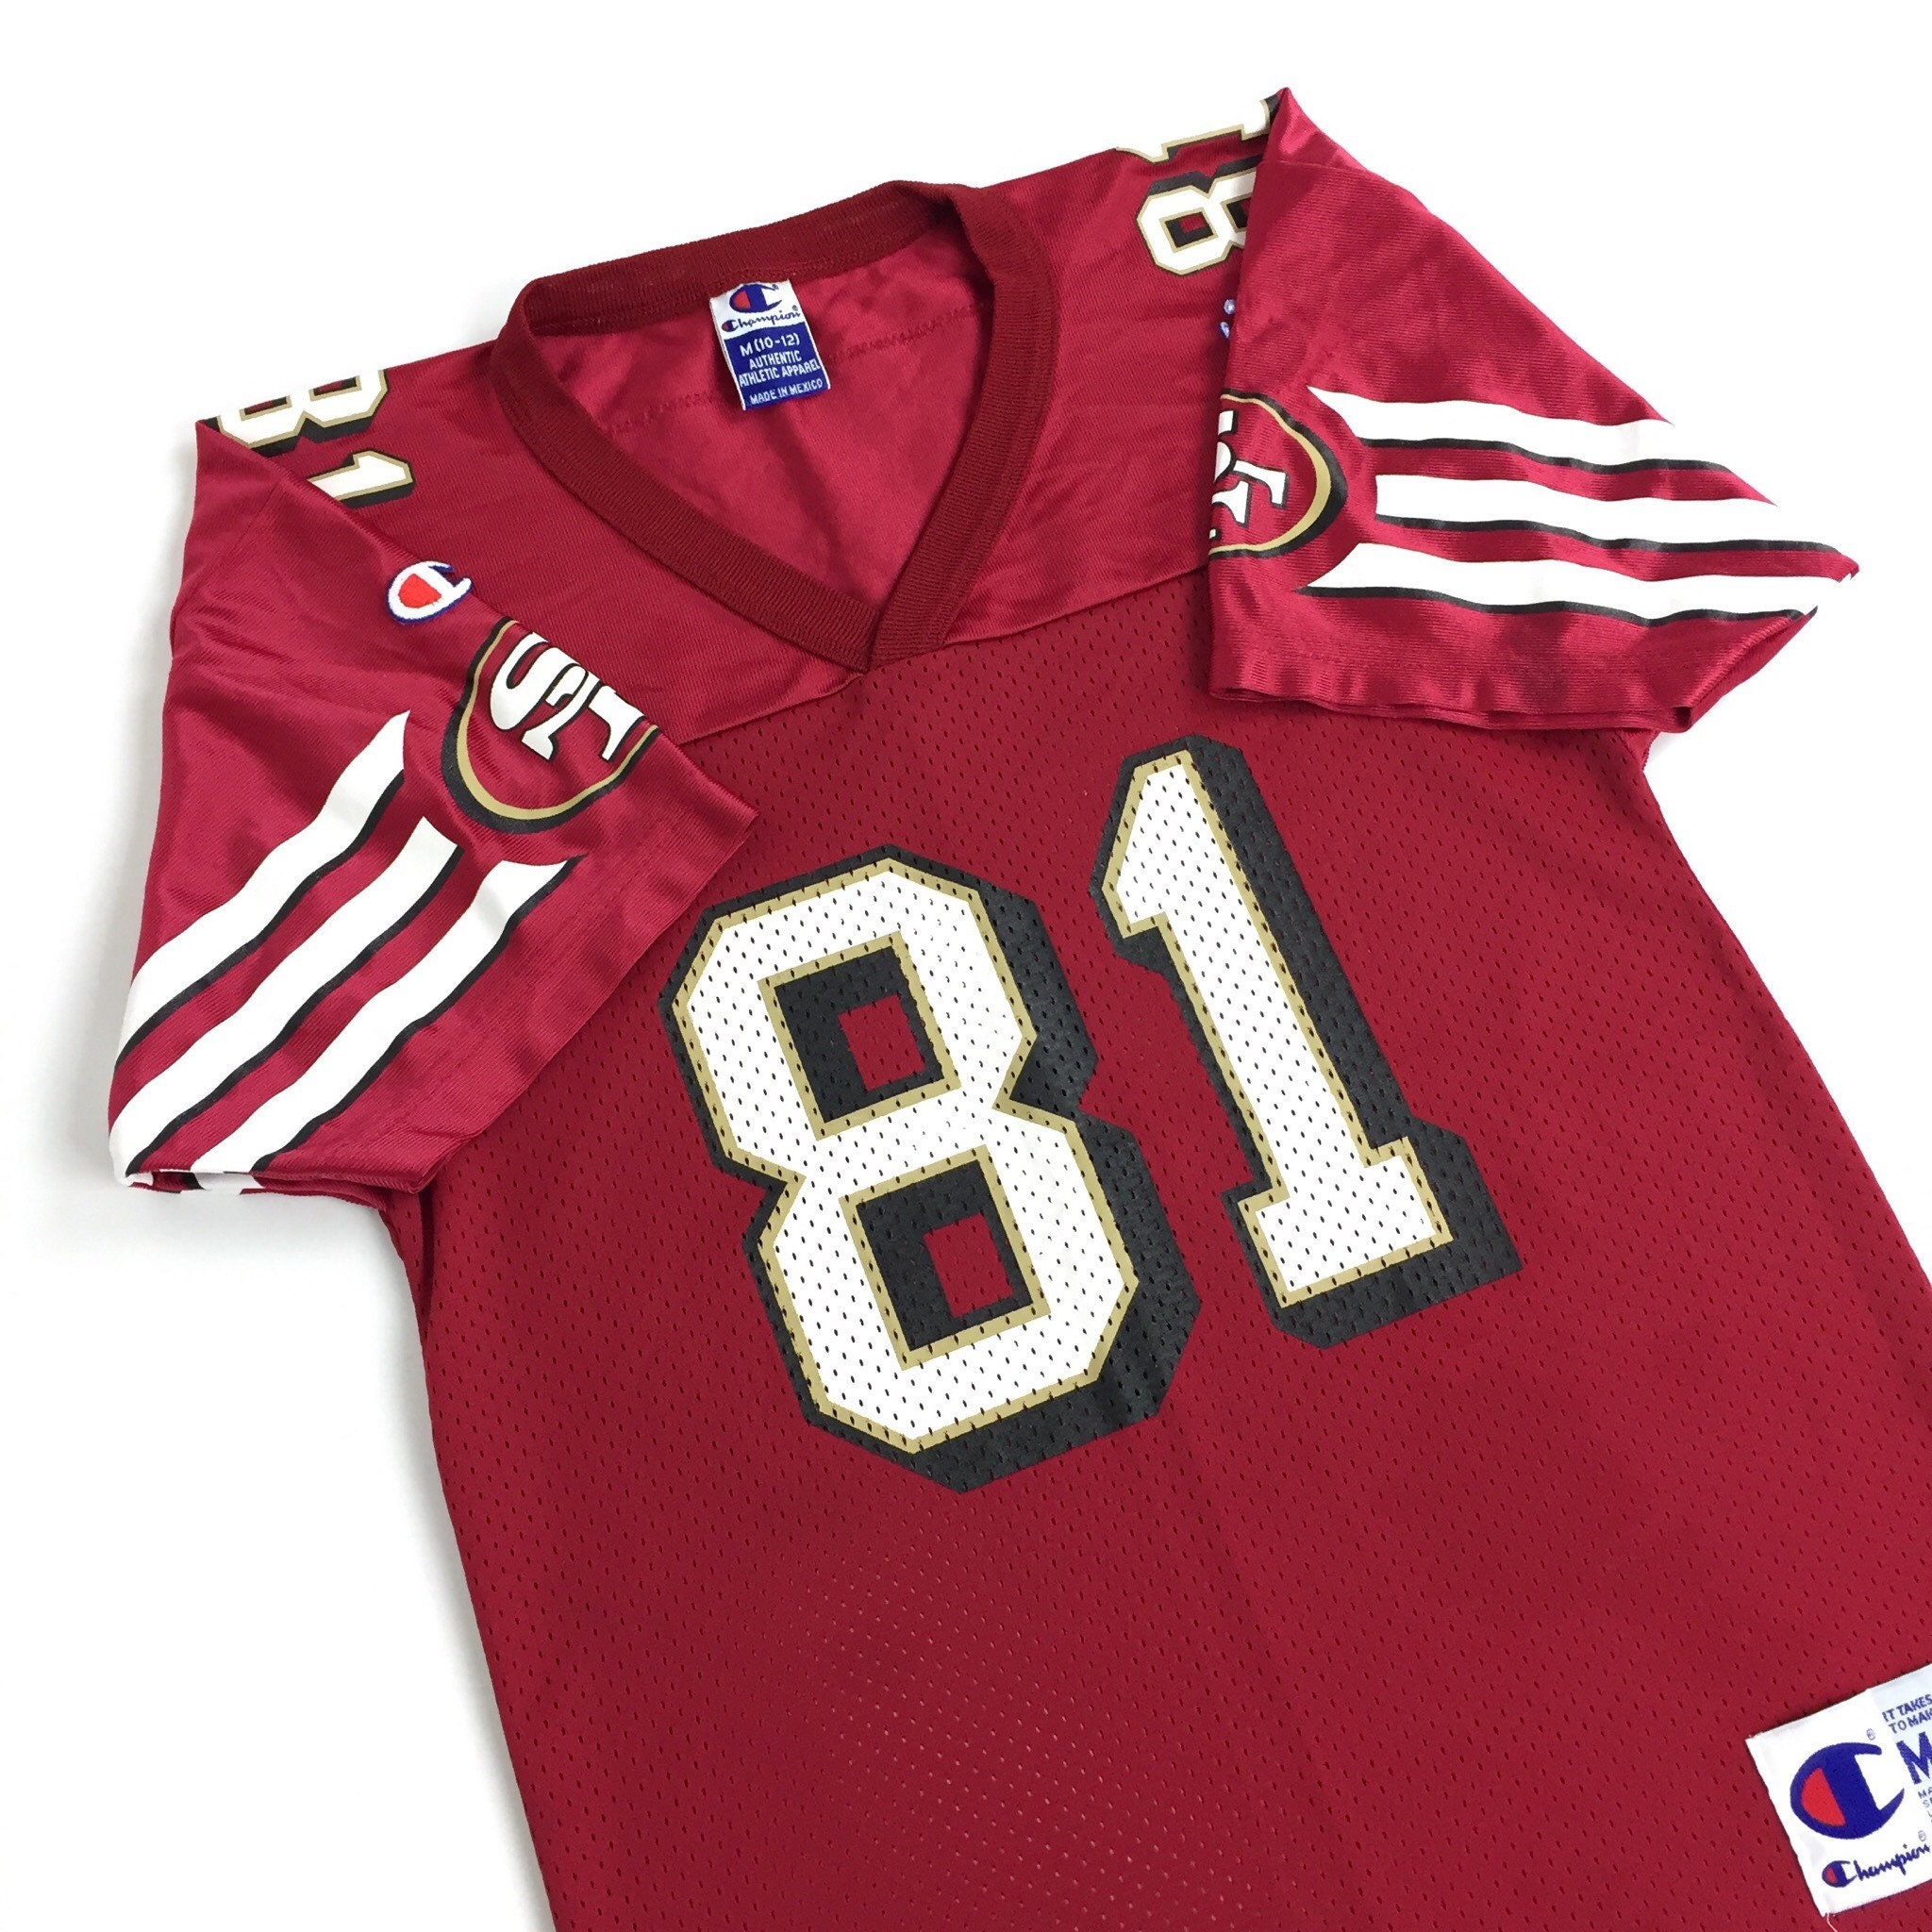 394b1a732 Vintage 90s Champion NFL San Francisco 49ers Forty Niners Terrell ...